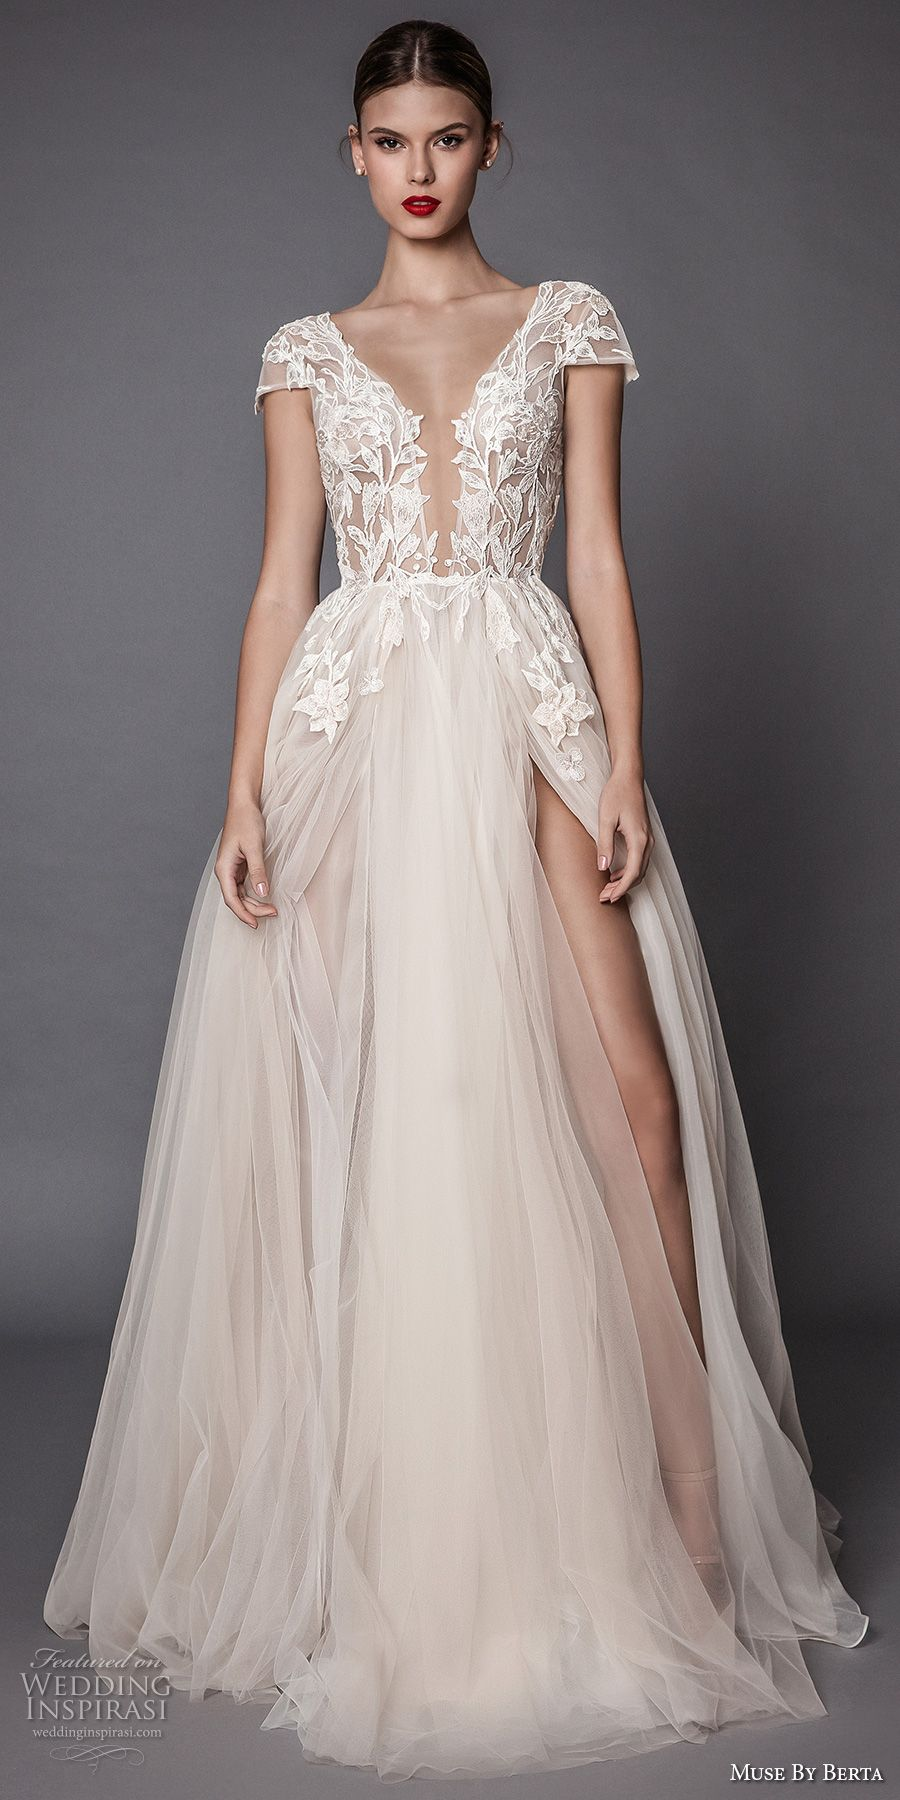 3fd77de6a8c Muse by Berta fall 2017 bridal cap sleeves deep plunging v neck heavily  embellished bodice lace tulle skirt high side slit romantic sexy a line  wedding ...